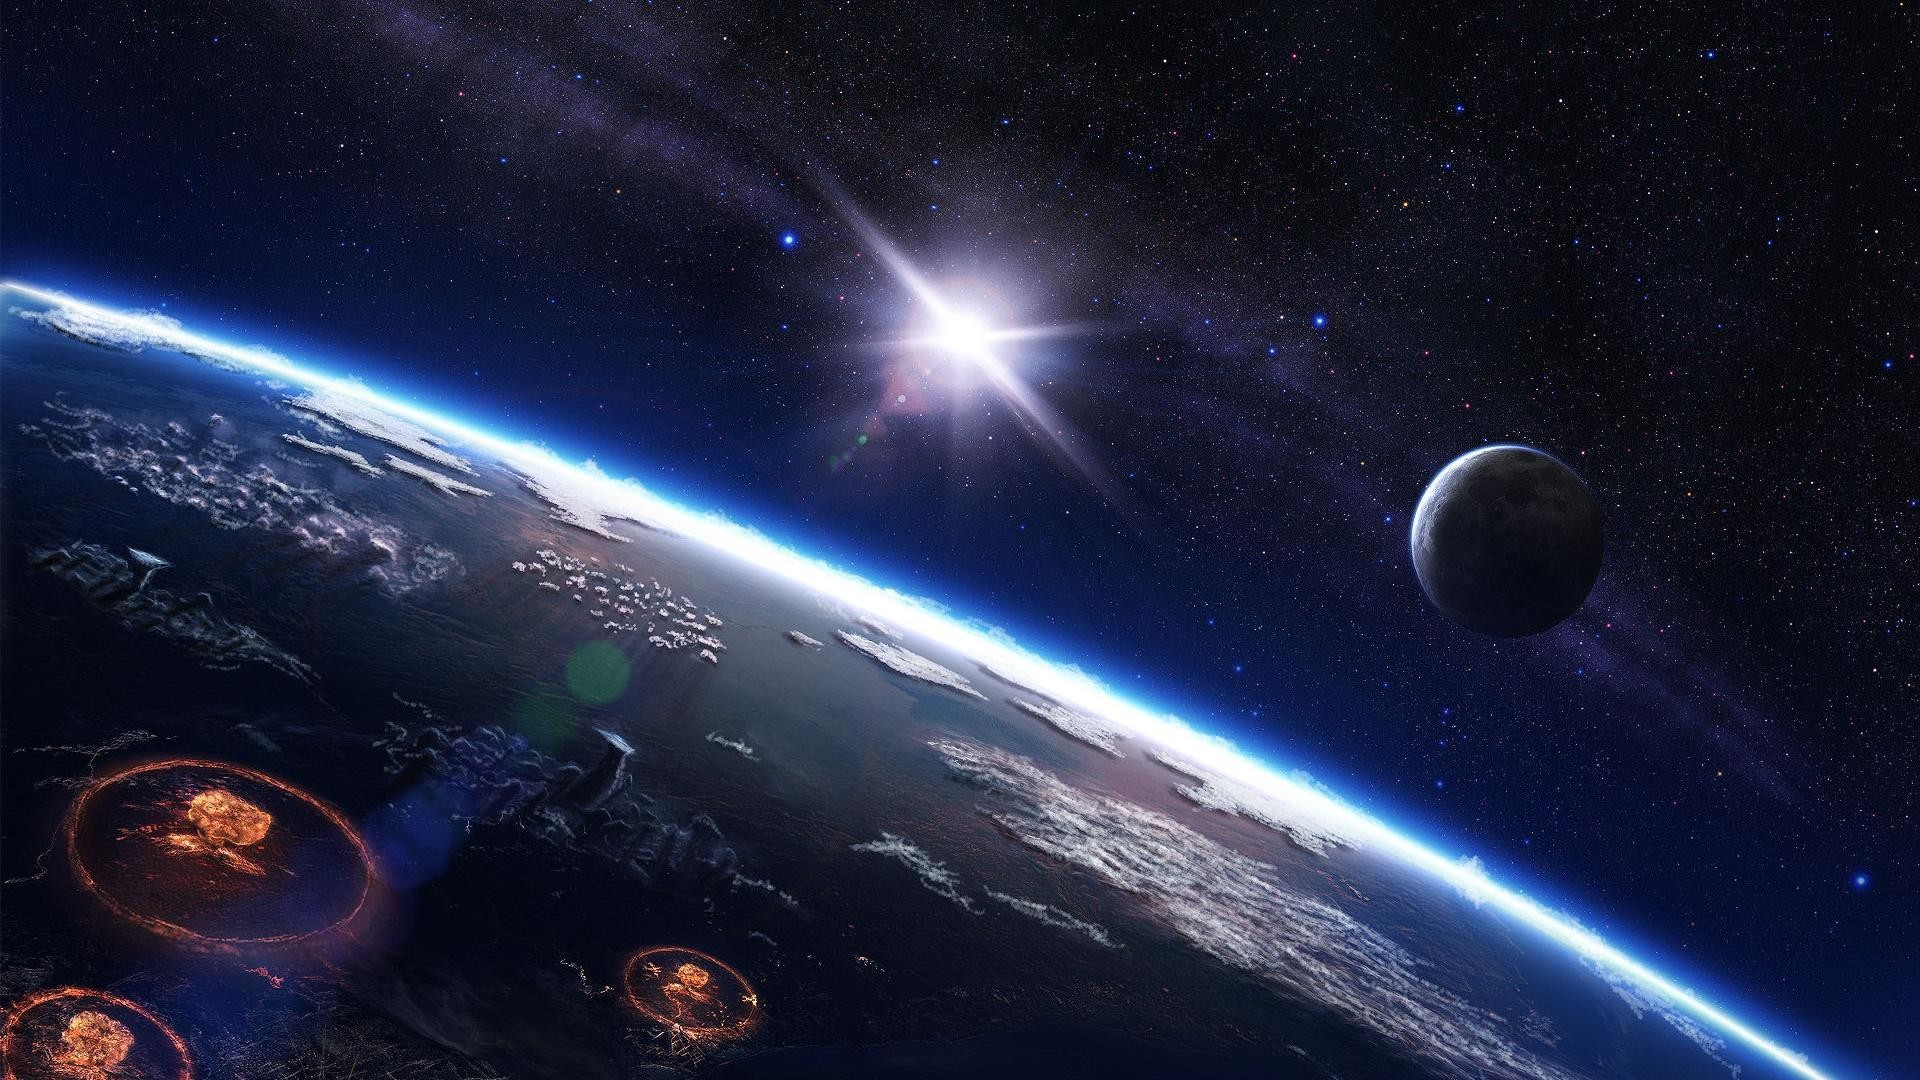 HD Wallpaper and background photos of space wallpaper for fans of Space  images.